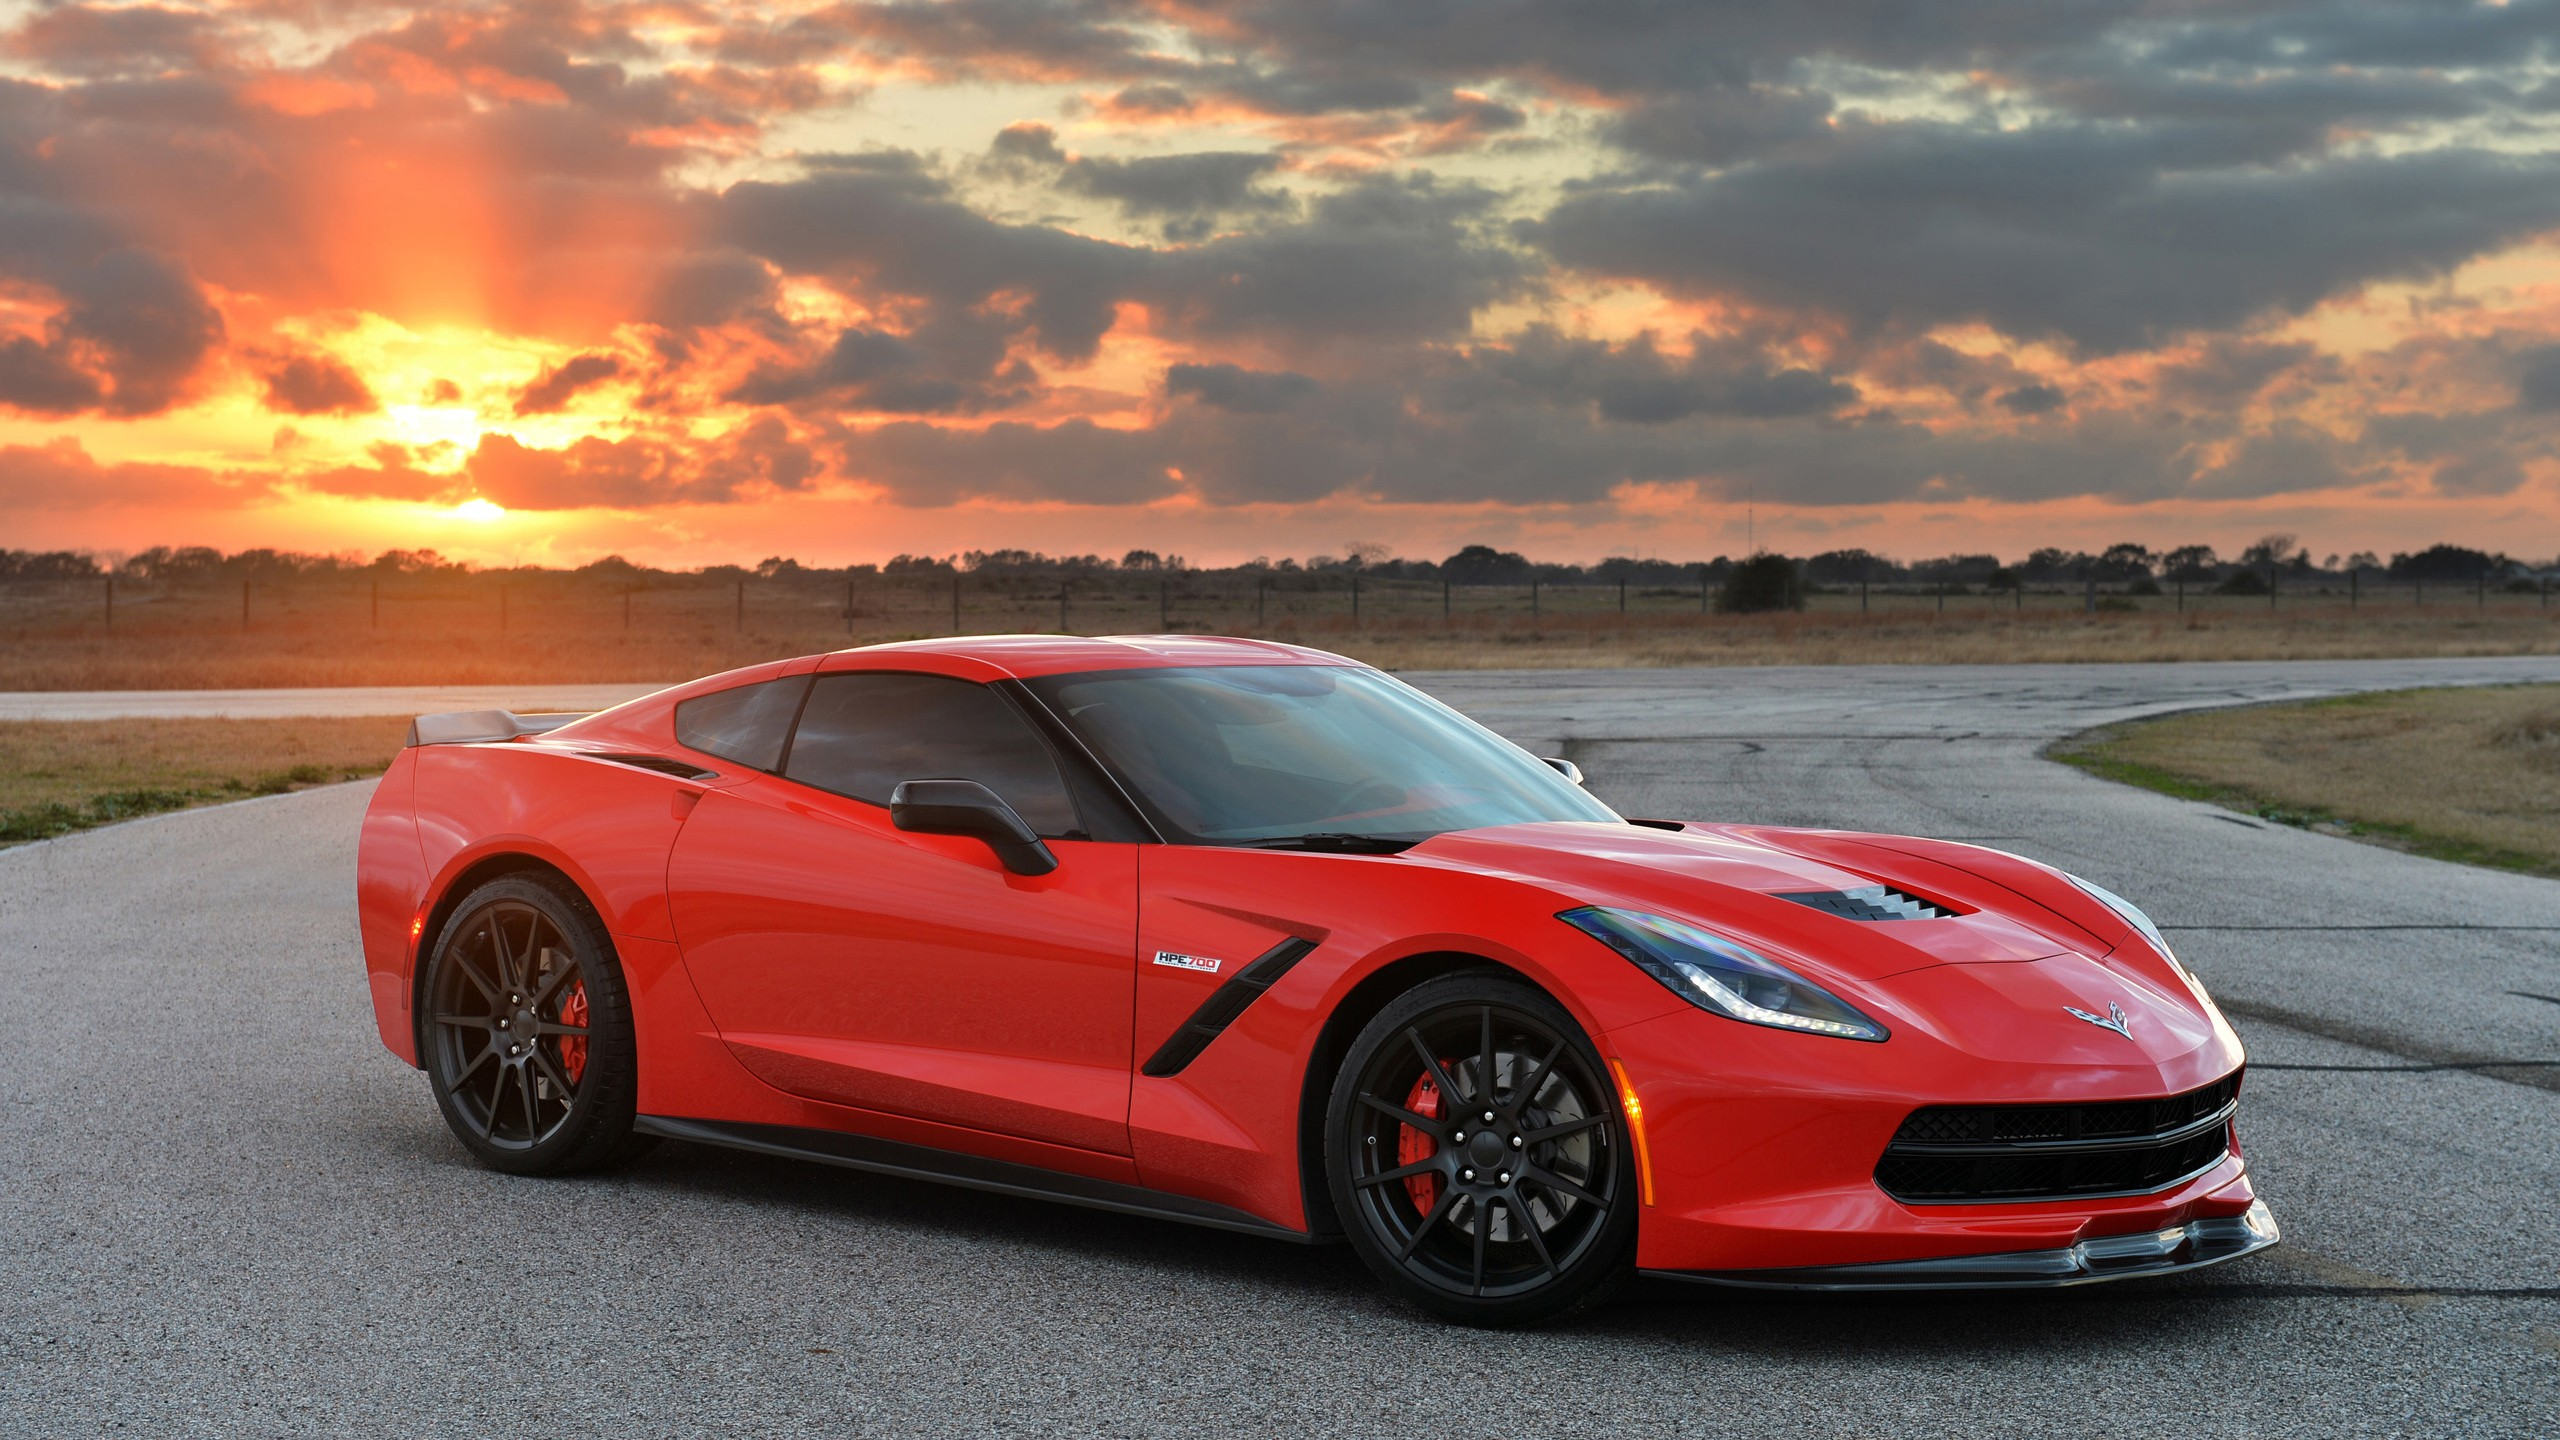 2014 Chevrolet Corvette Stingray Hpe700 Twin Turbo By